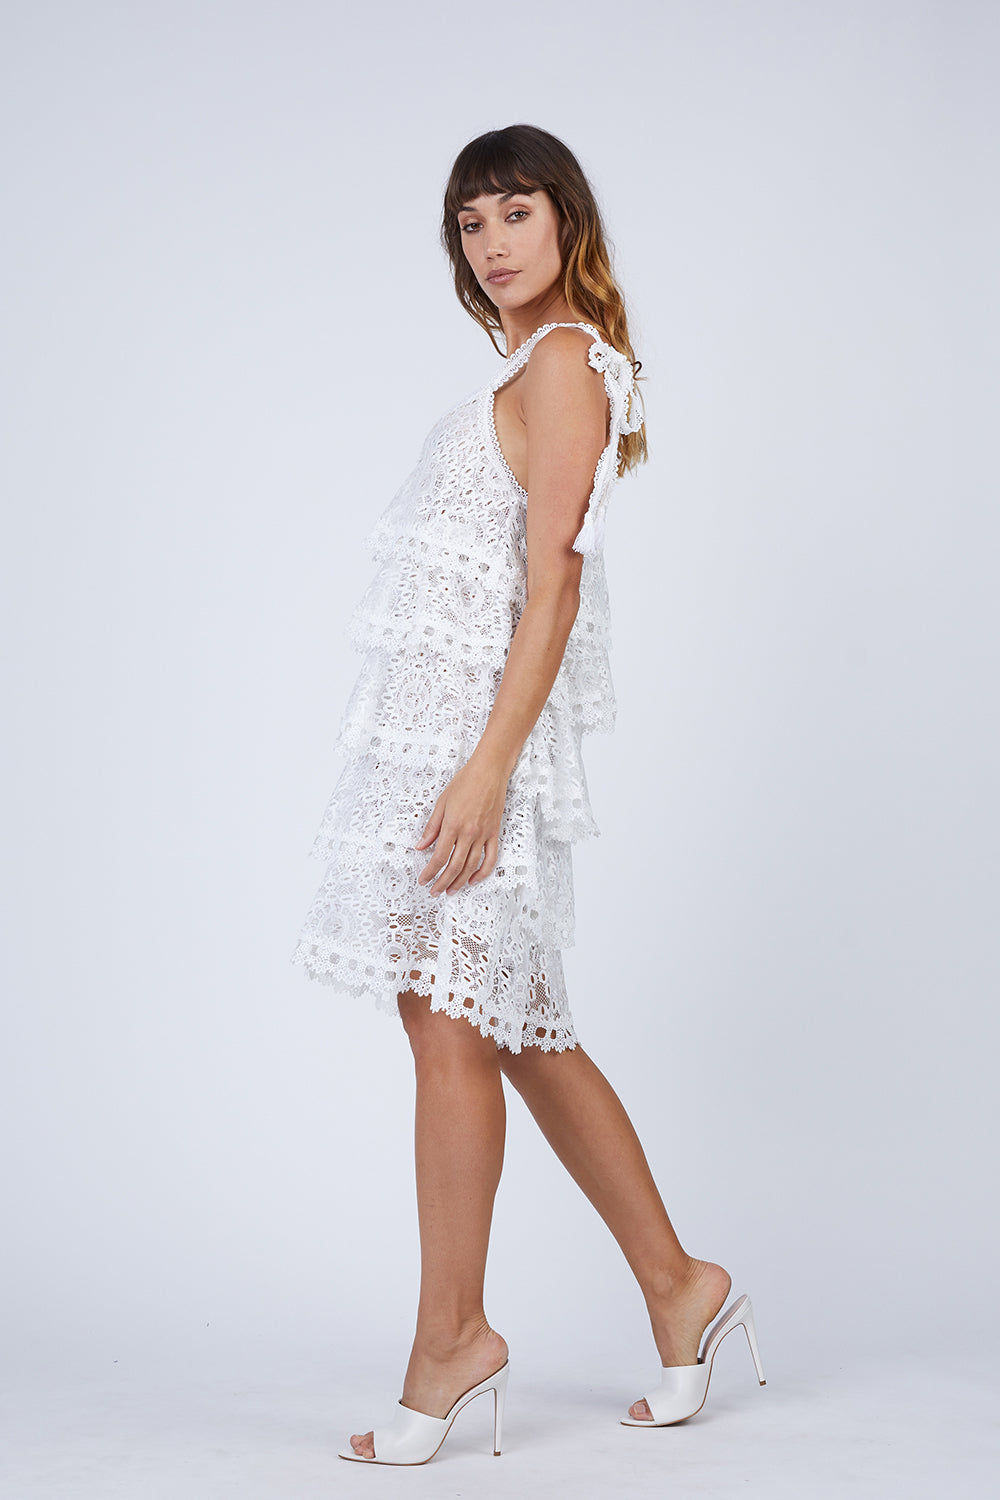 WAIMARI Audrey Tiered Ruffle Lace Sundress - Ivory White Dress | Ivory White| Waimari Audrey Tiered Ruffle Lace Sundress - Ivory White Lace dress V neckline  Ruffle tiers Shoulder ties with tassel ends  Side View